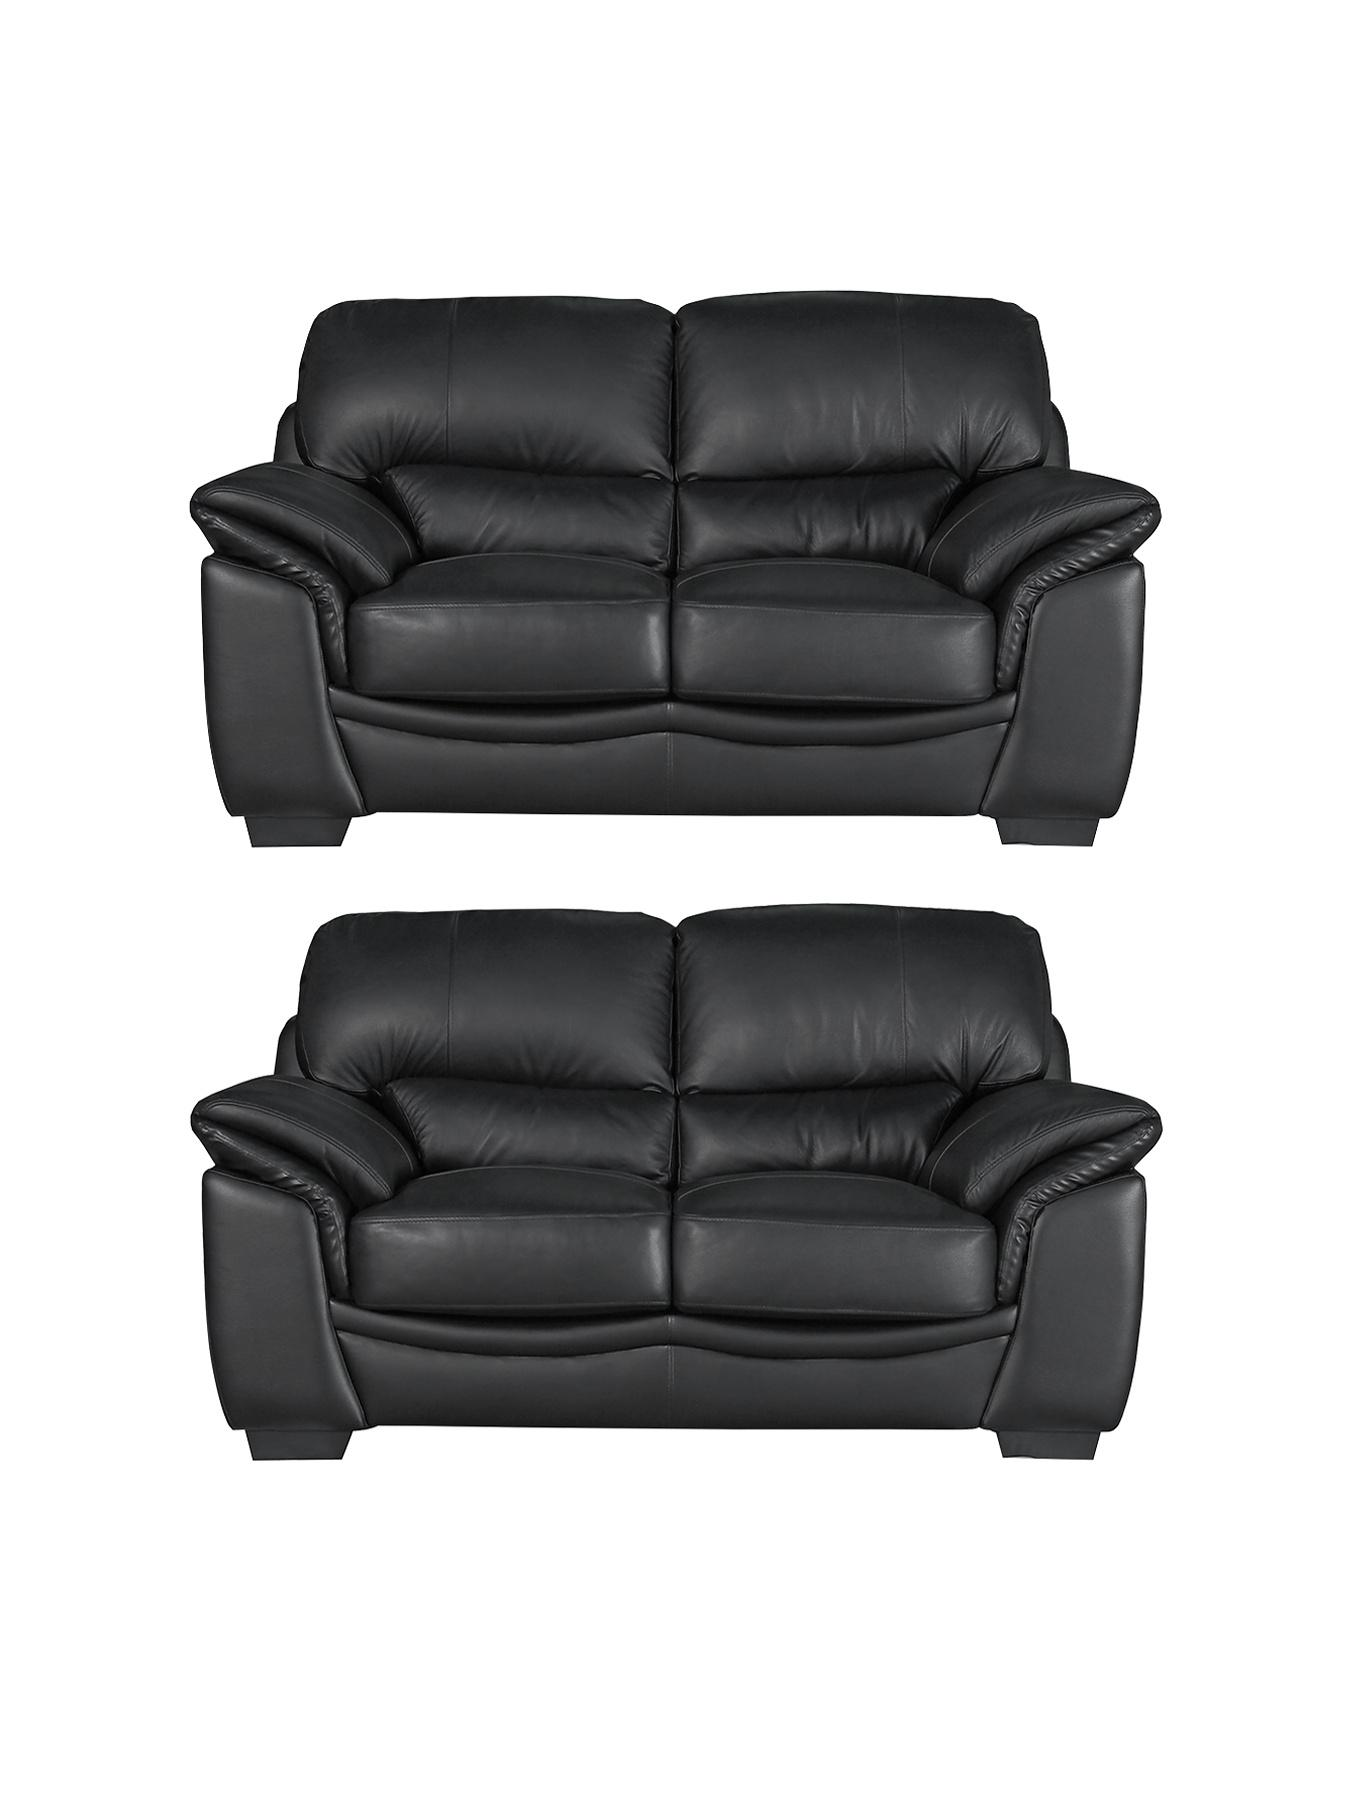 Harley 2-Seater plus 2-Seater Sofa Set - Black, Black,Chocolate